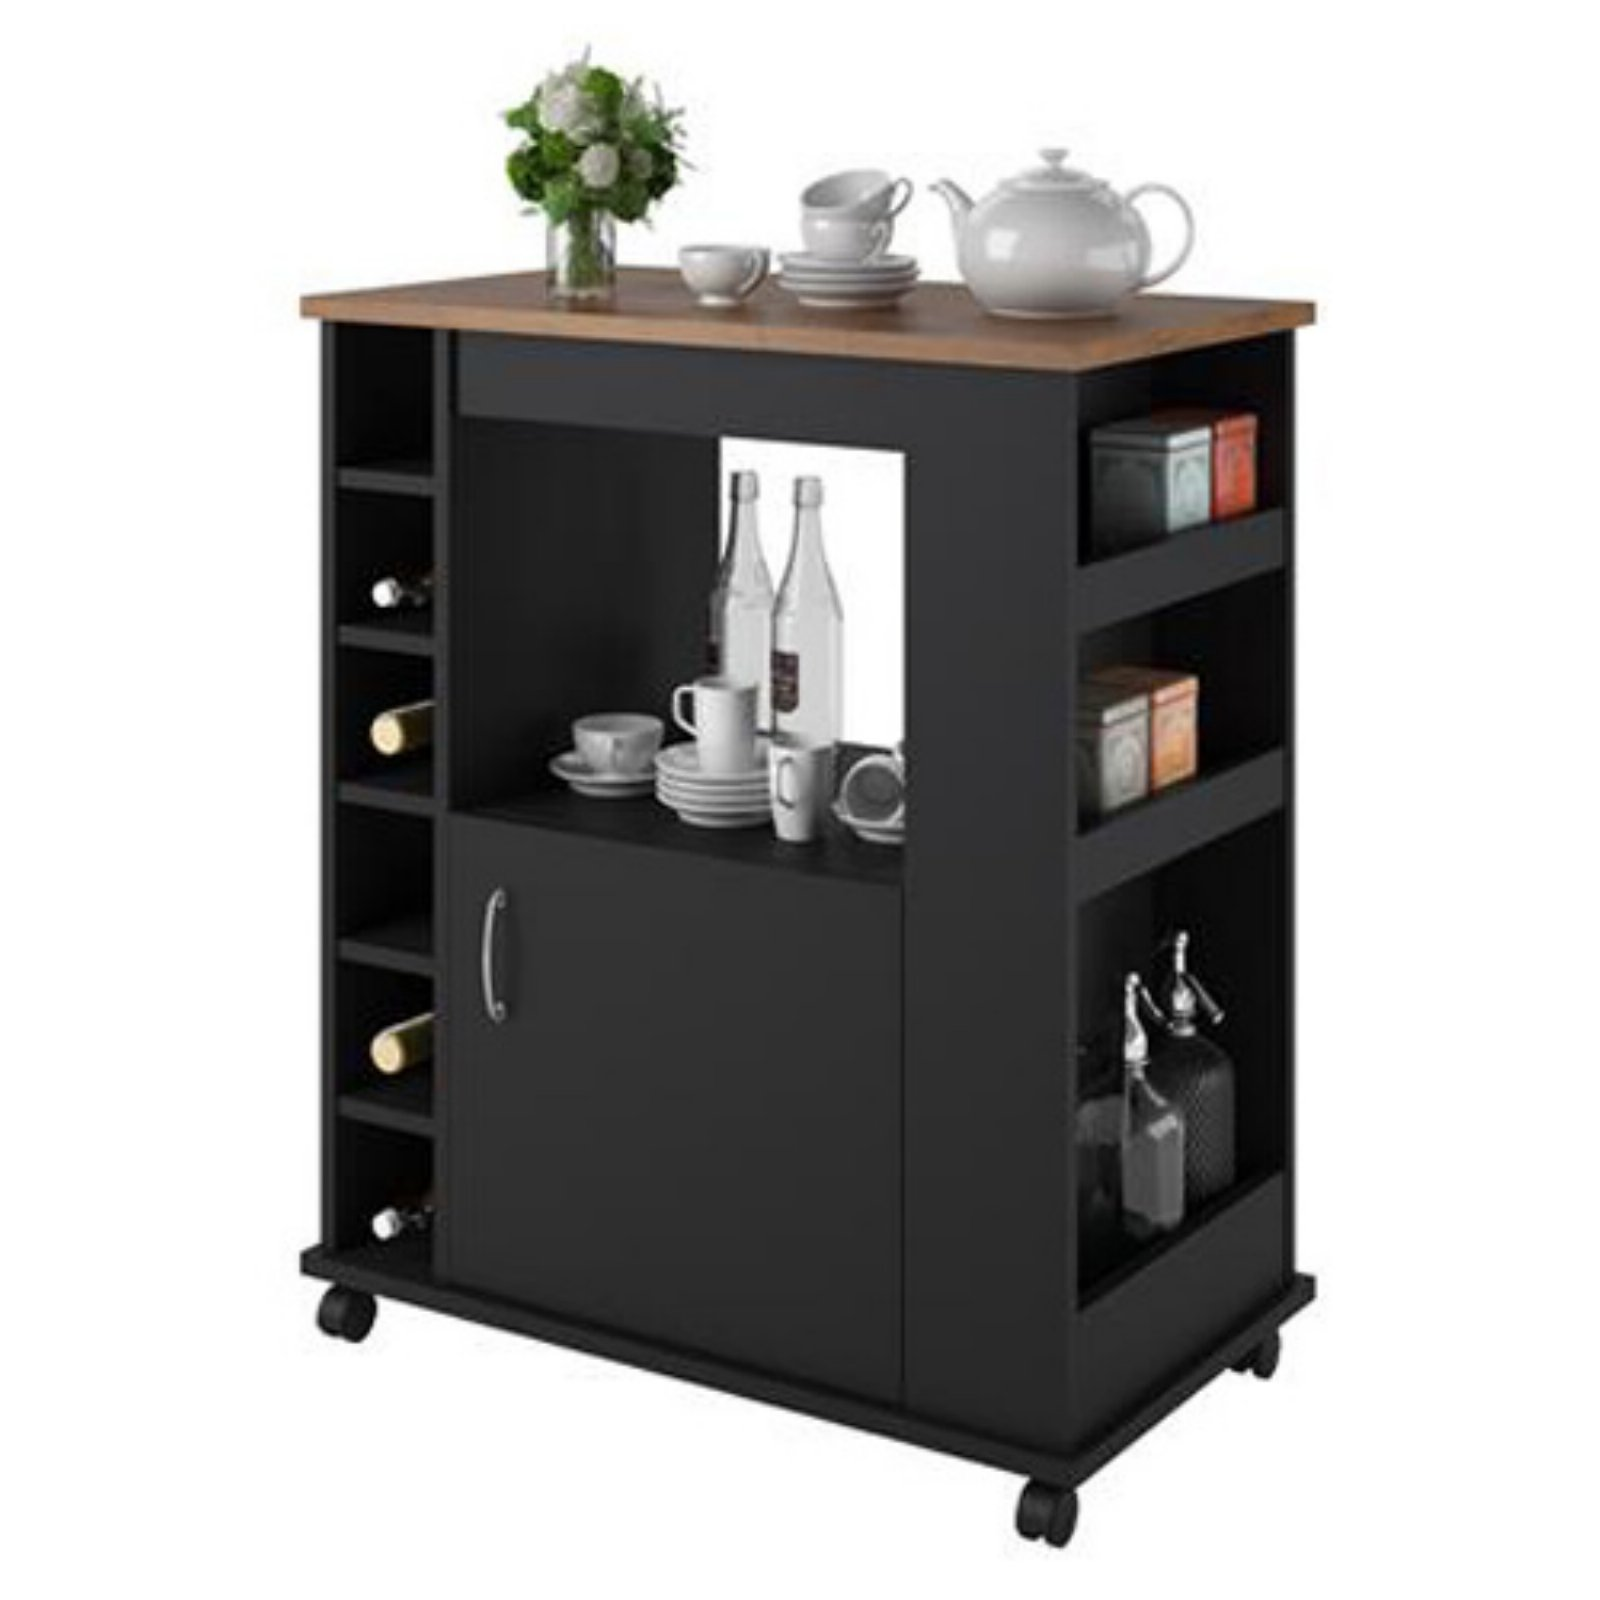 Ameriwood Home Williams Kitchen Cart, Black/Old Fashioned Pine by Ameriwood Home